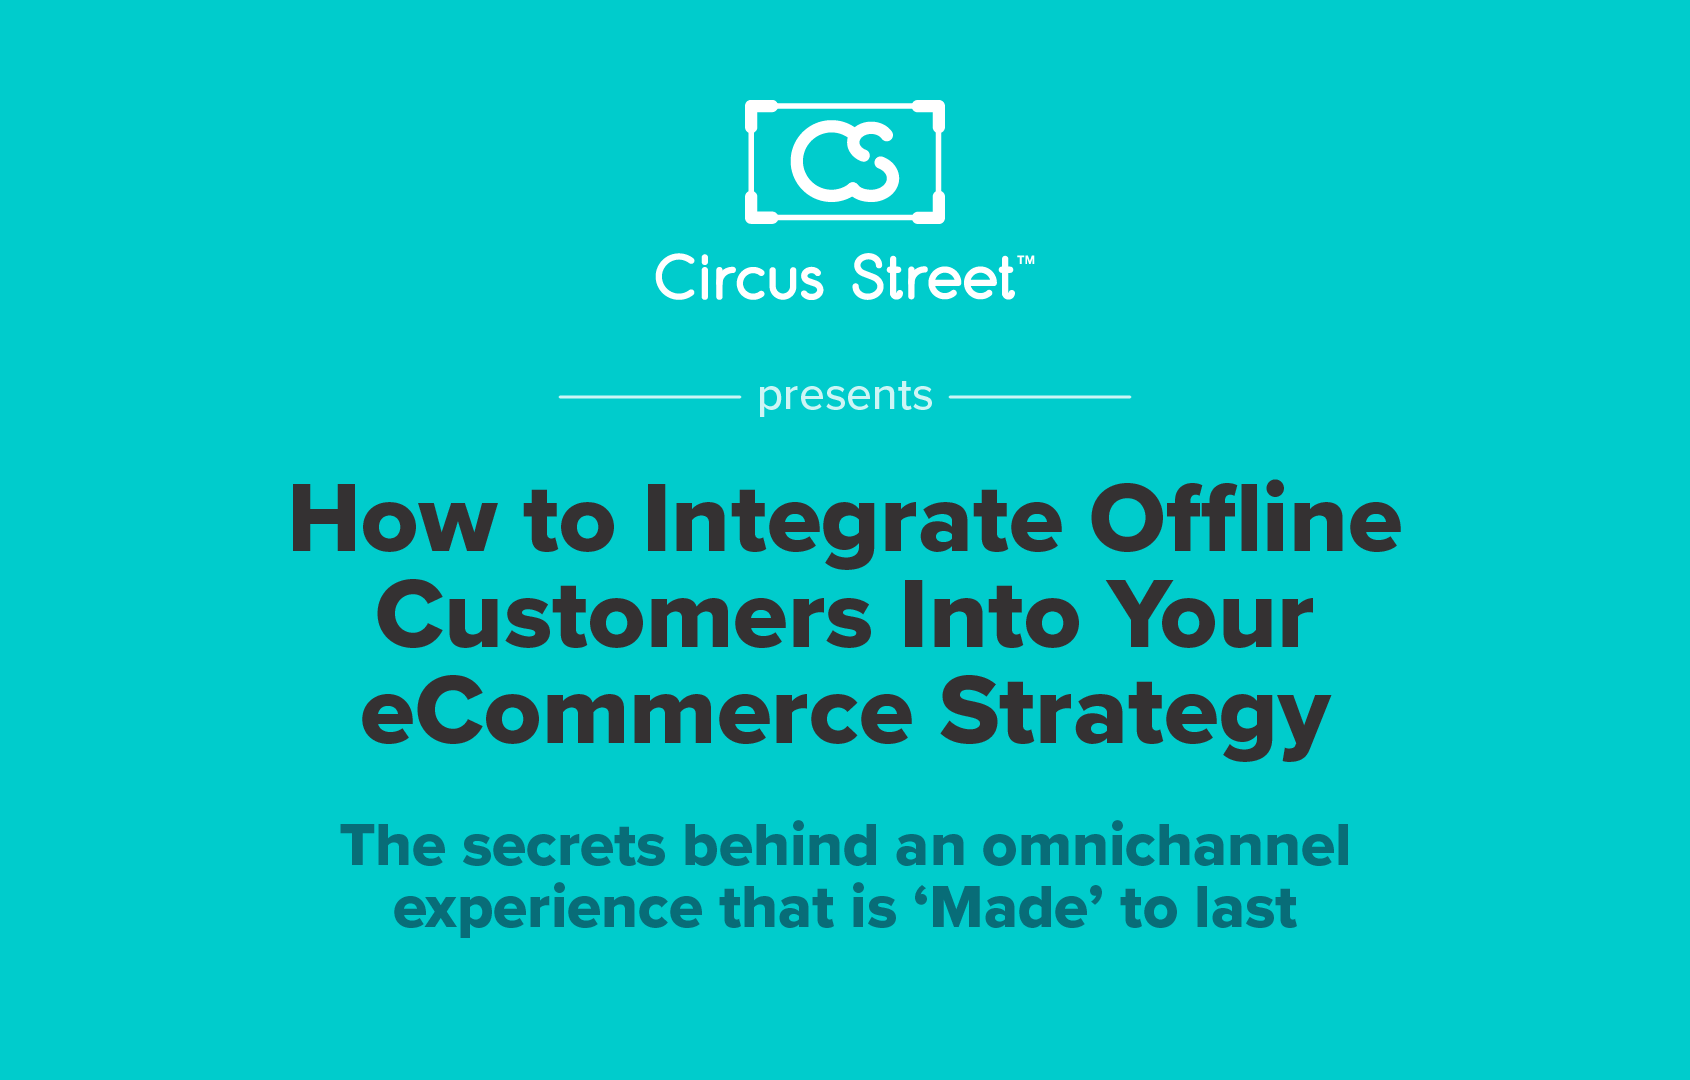 How to Integrate Offline Customers Into Your eCommerce Strategy